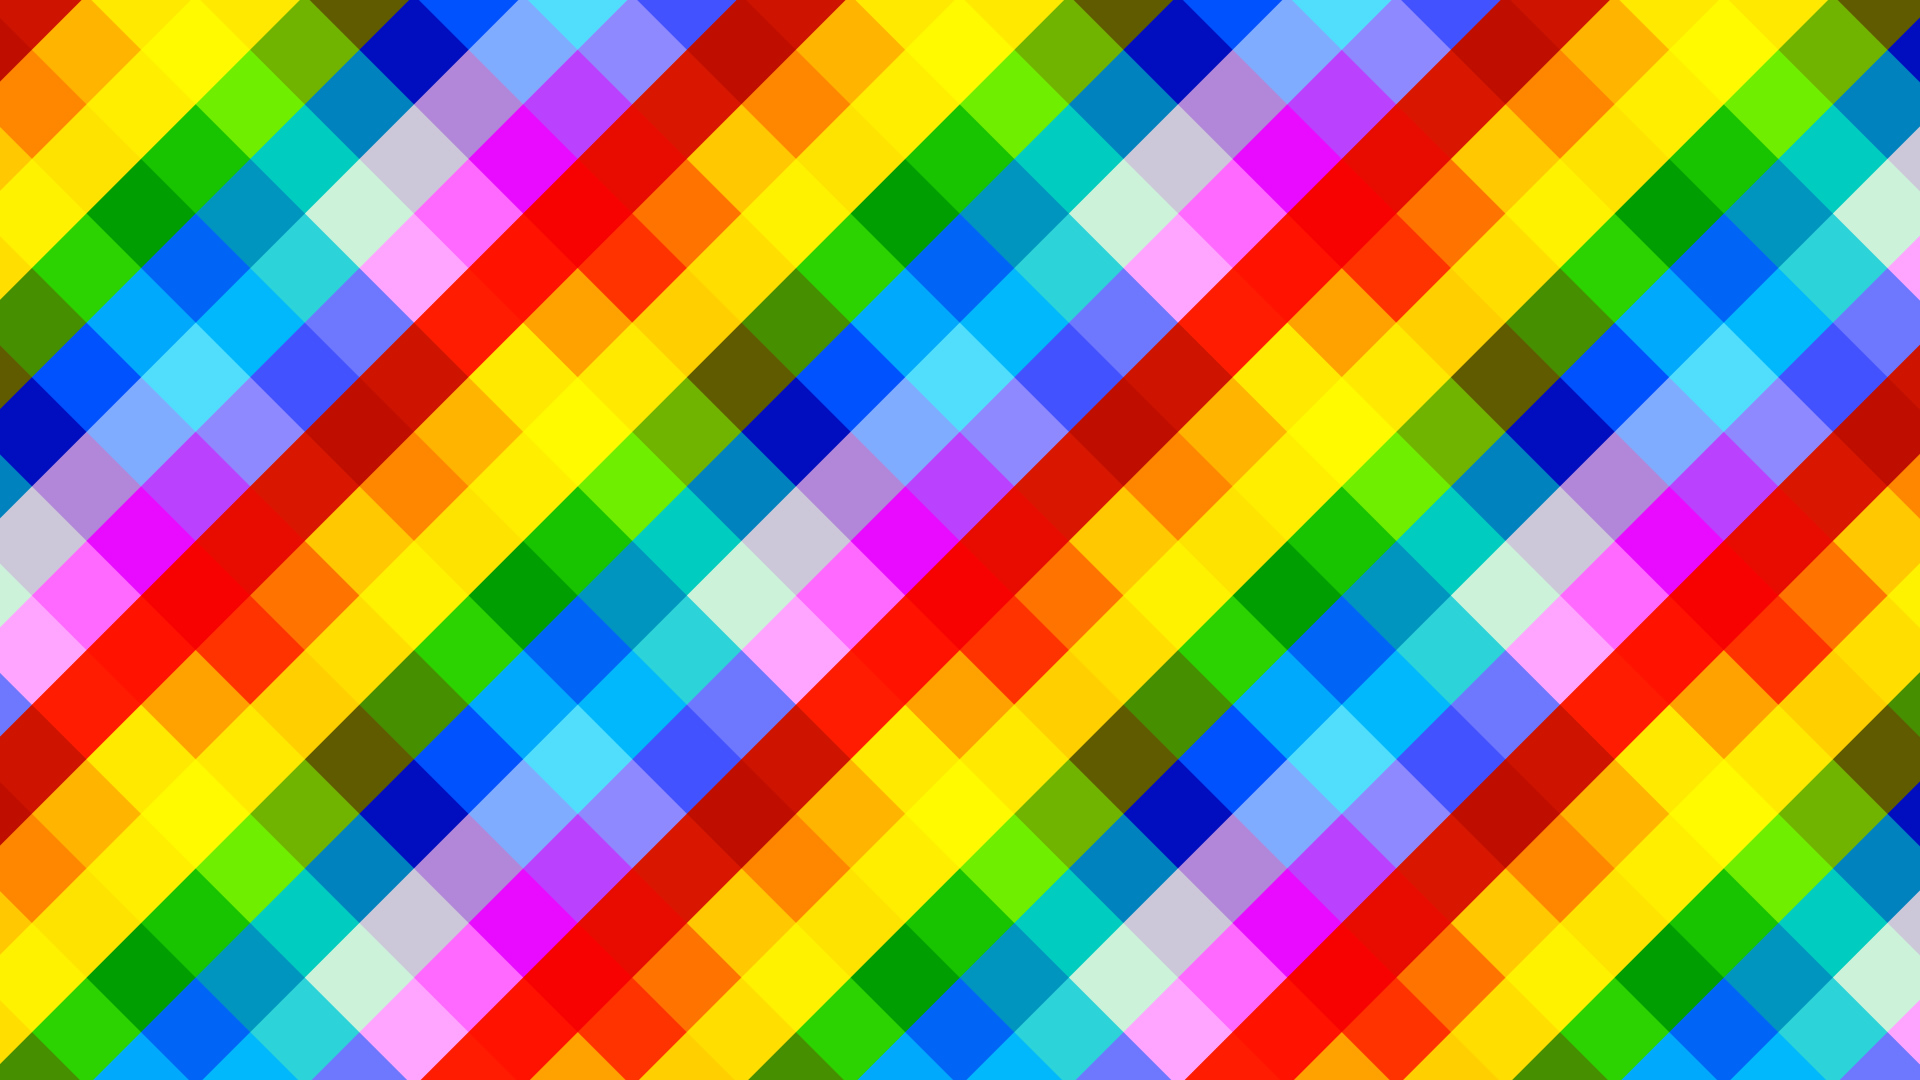 Pixel Art colorful square Background material Pictures 1920x1080